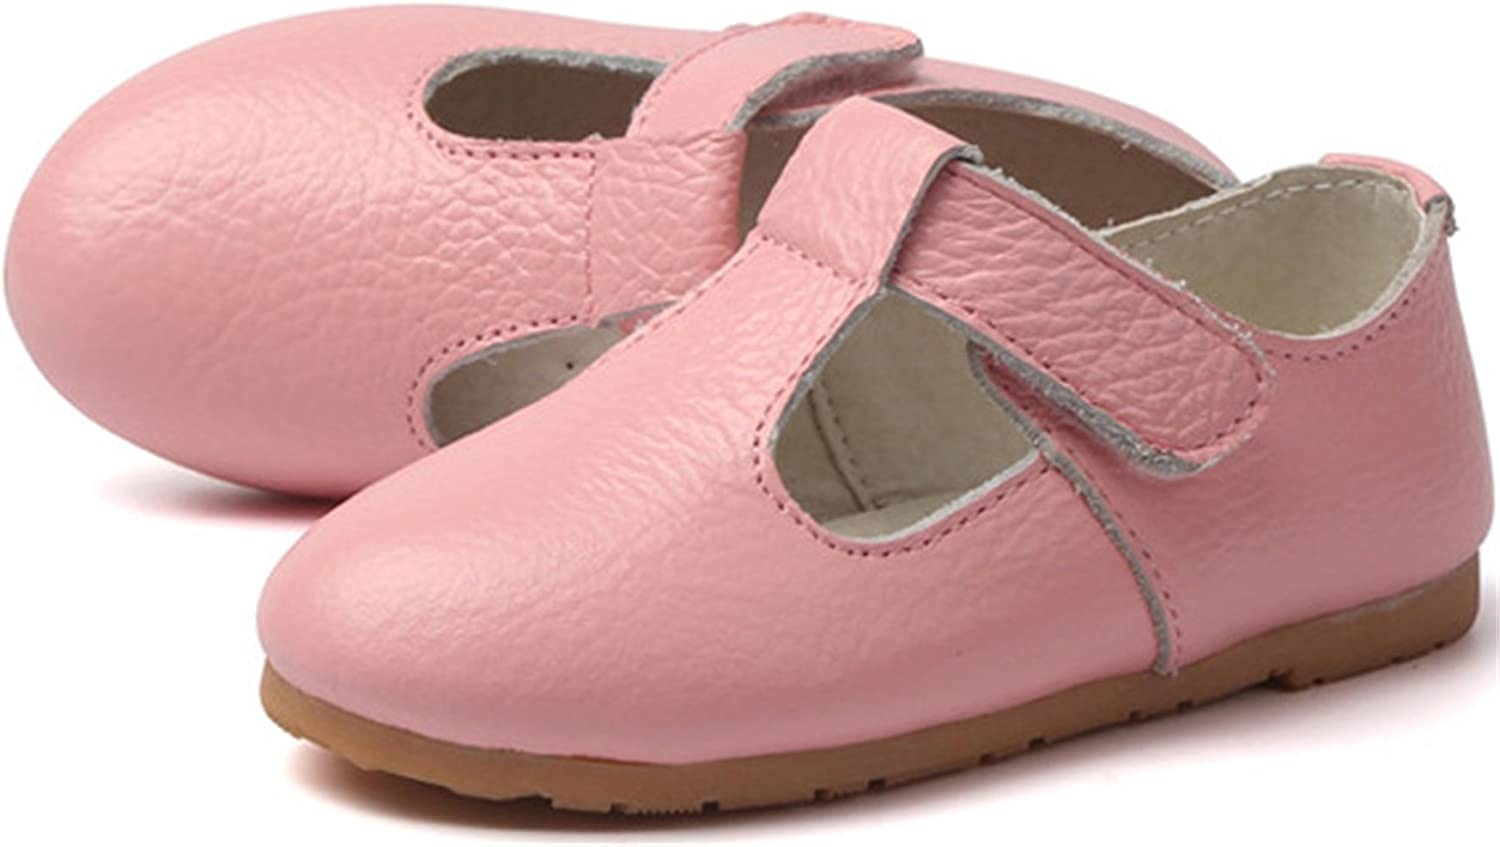 PPXID Toddler Little Girls Leather T-Bar Oxford Shoes Mary Jane Flats Shoes-Pink 9.5 US Size